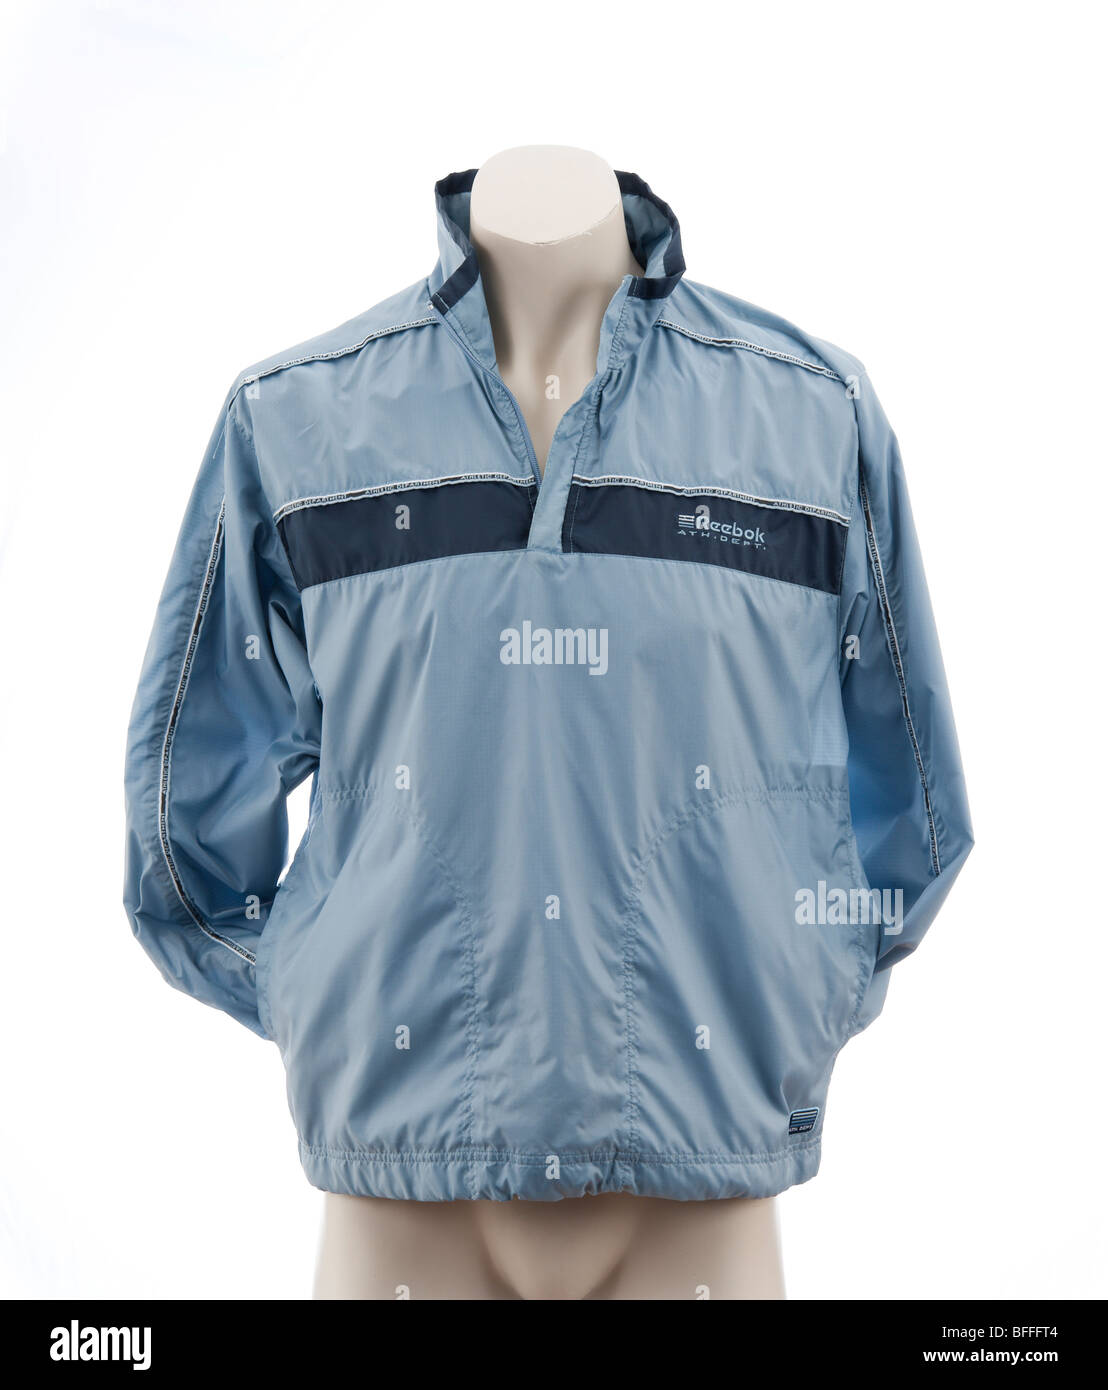 Athletic Rain Jacket 1N058t